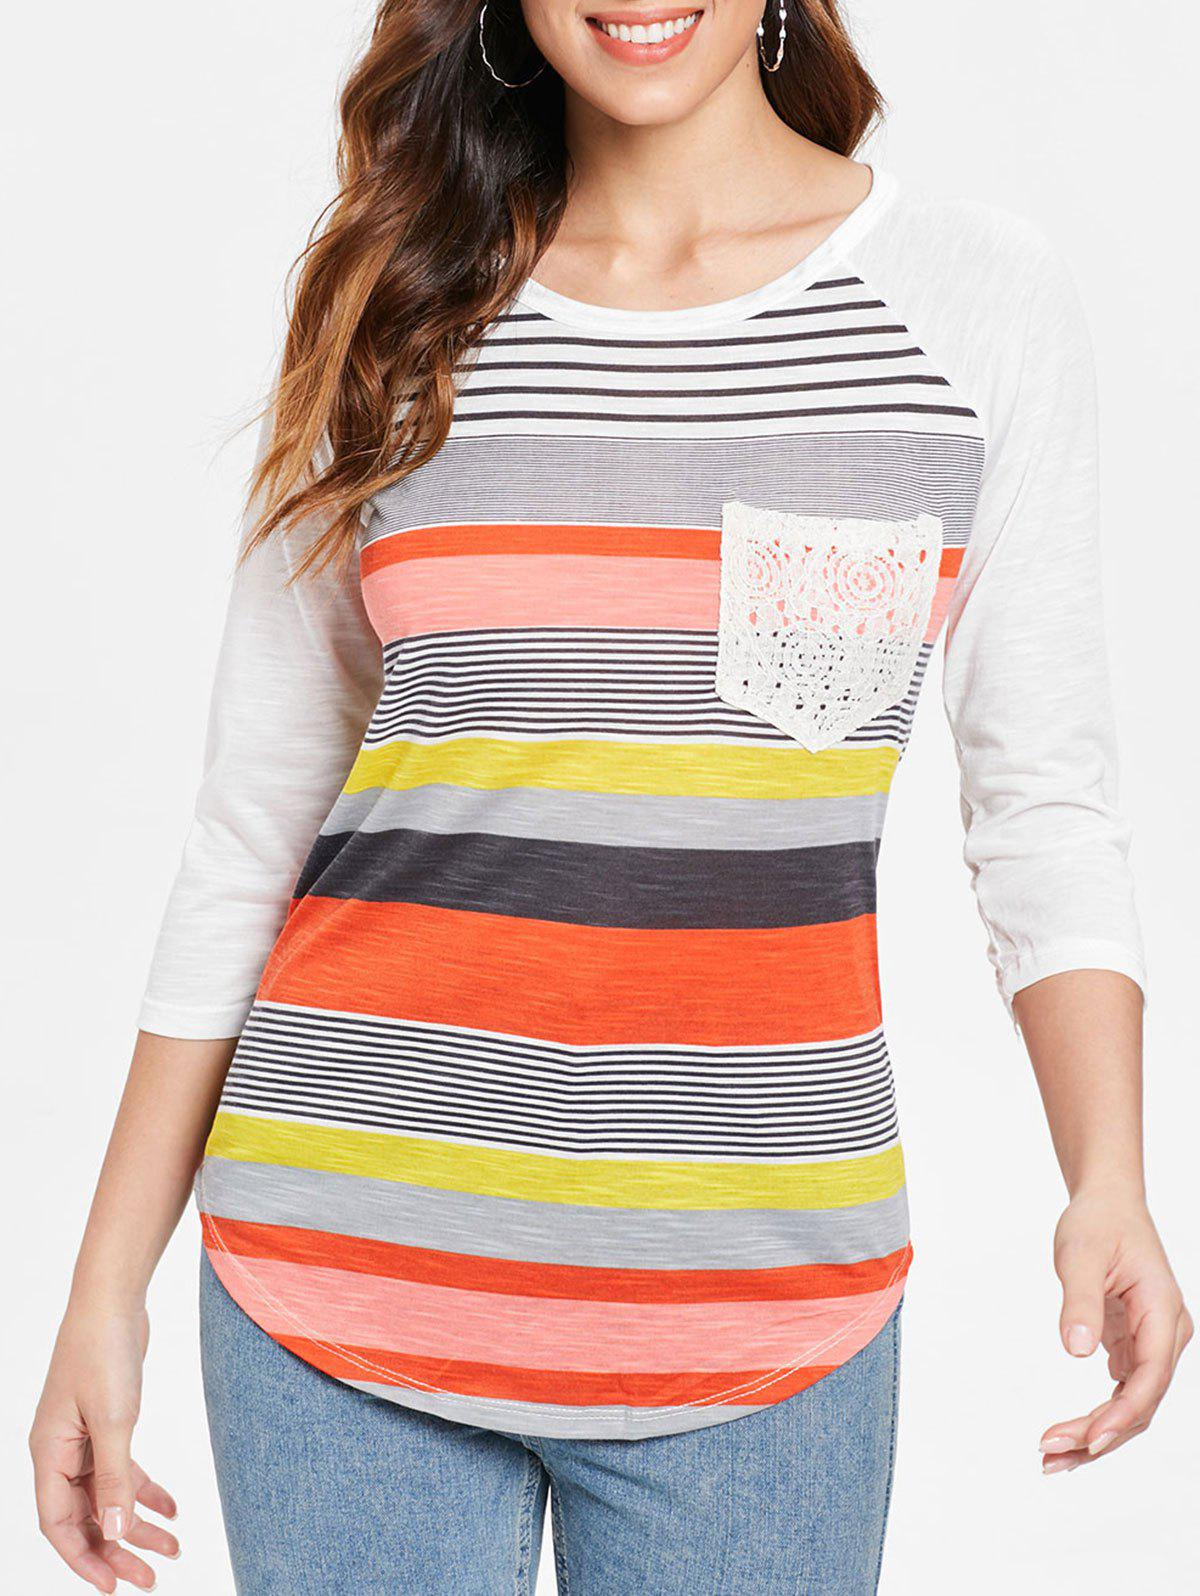 Unique Trendy Striped Lace Spliced 3/4 Sleeve Irregular T-Shirt For Women